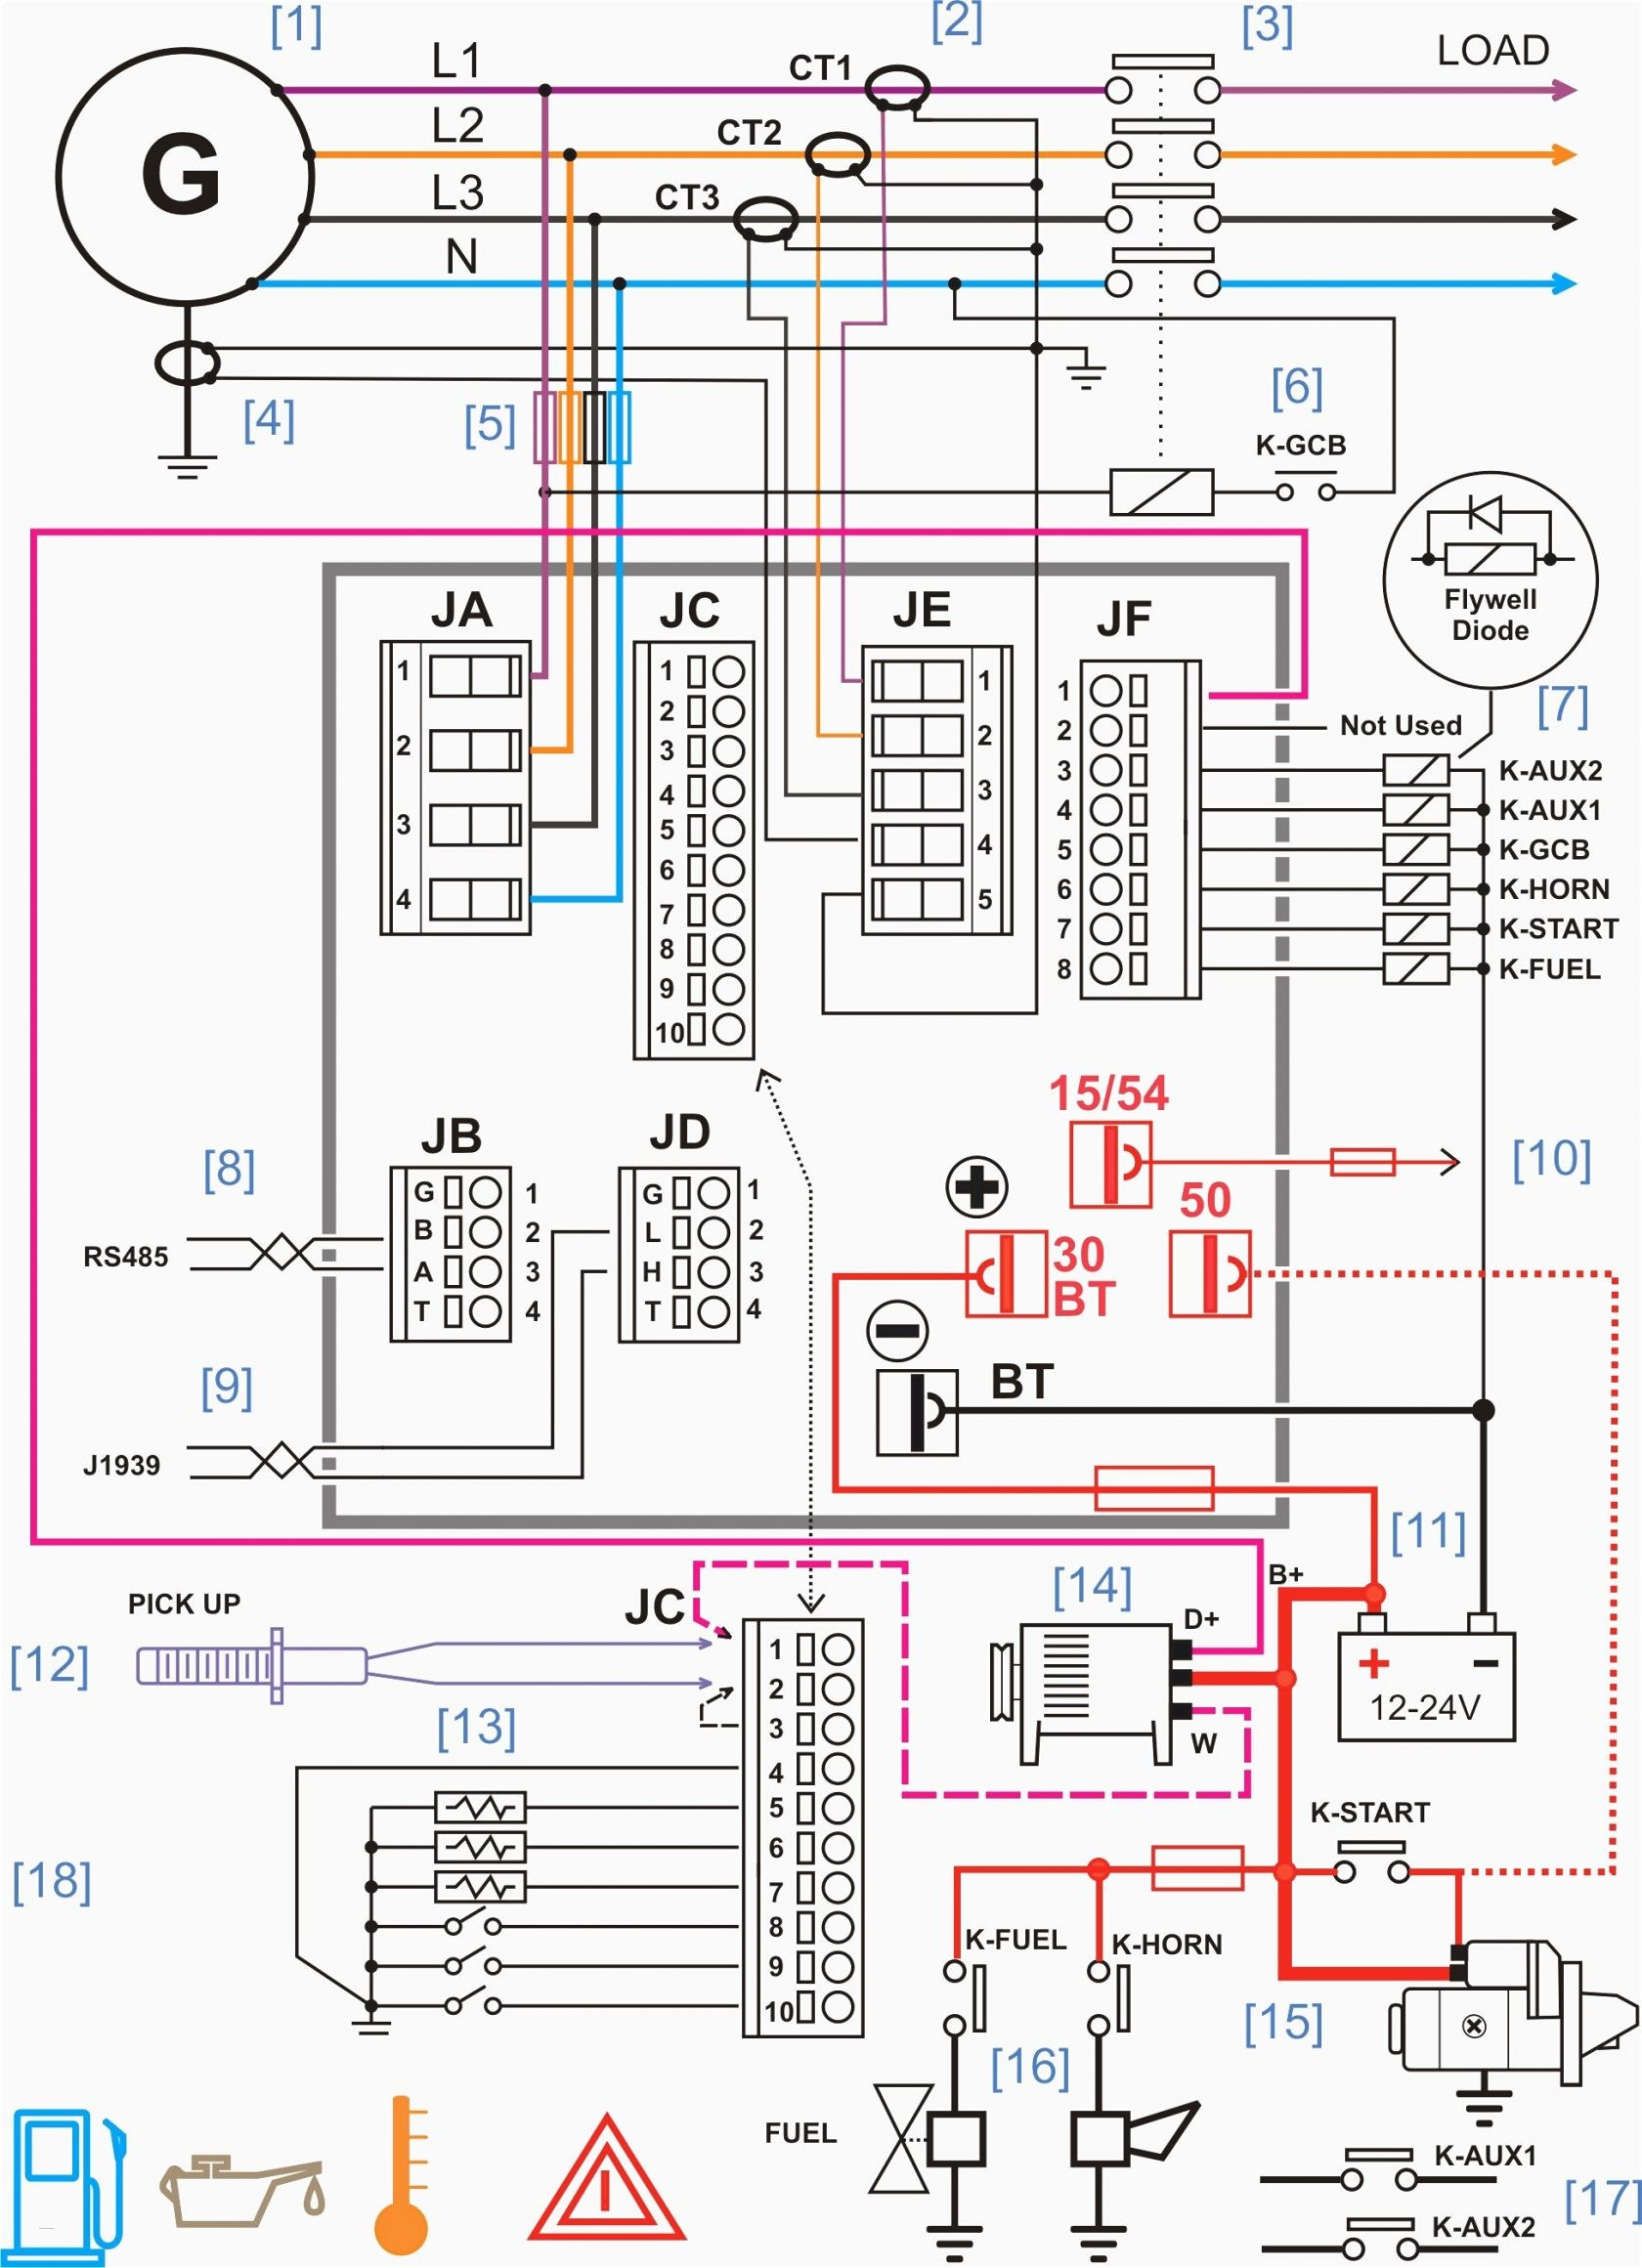 lenel access control wiring diagram Download-Circuit Diagram Examples Download Dome Cameraing Diagram with for Security In Lenel Access Control 17-c